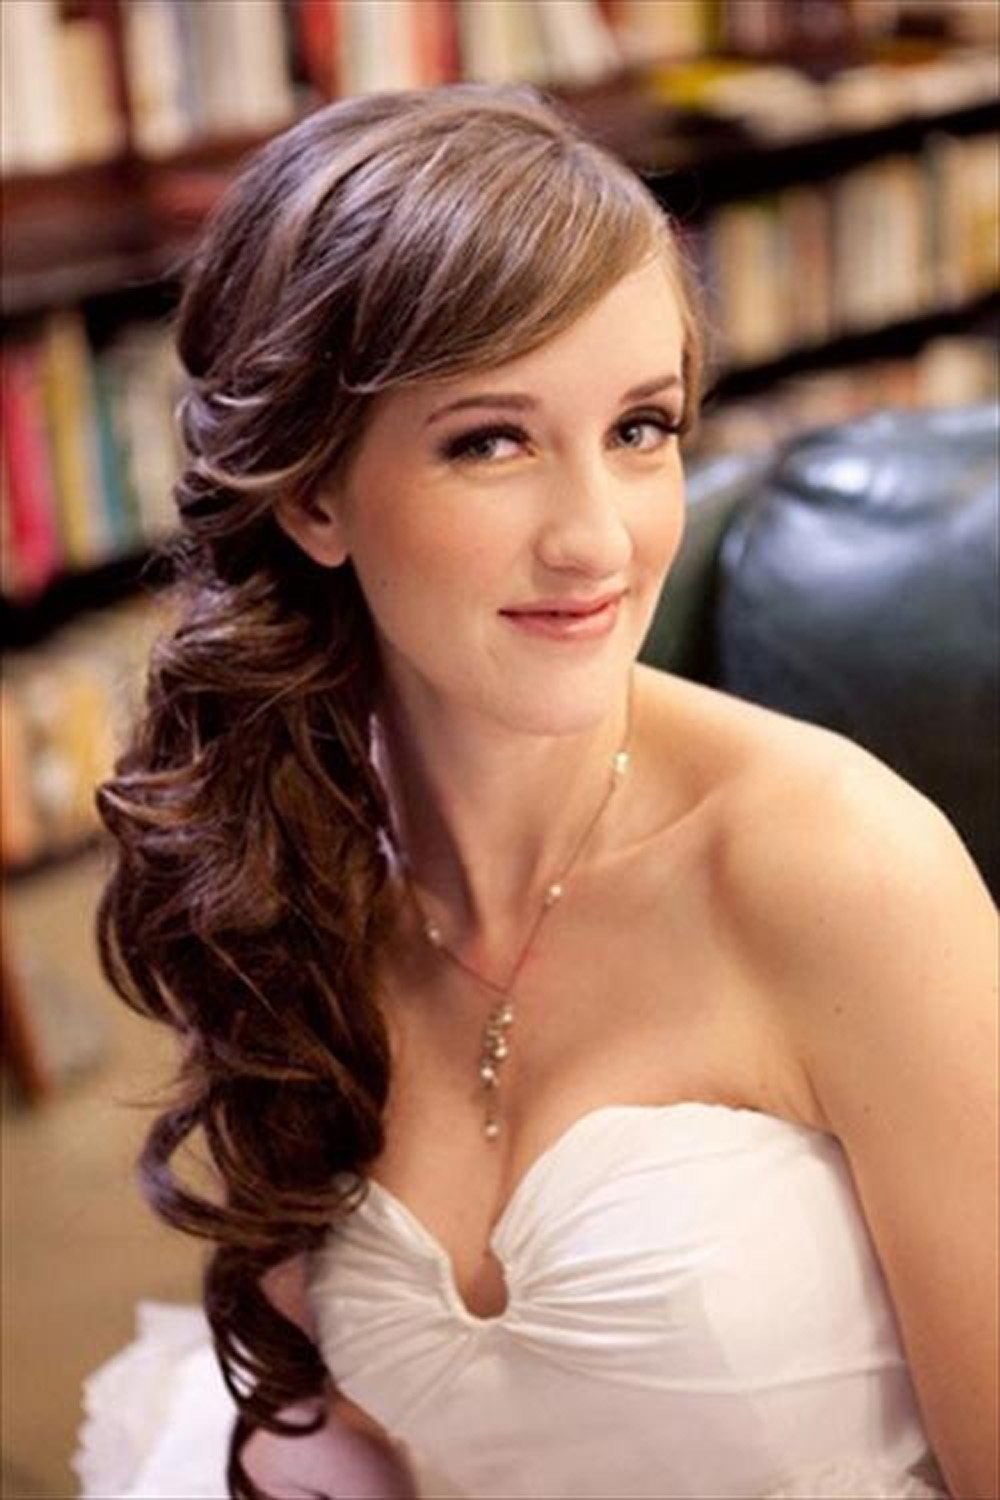 Fashionable Beach Wedding Hairstyles For Long Curly Hair With Wedding Hairstyles Ideas Side Ponytail Long Thick Wavy Hair For (View 5 of 15)